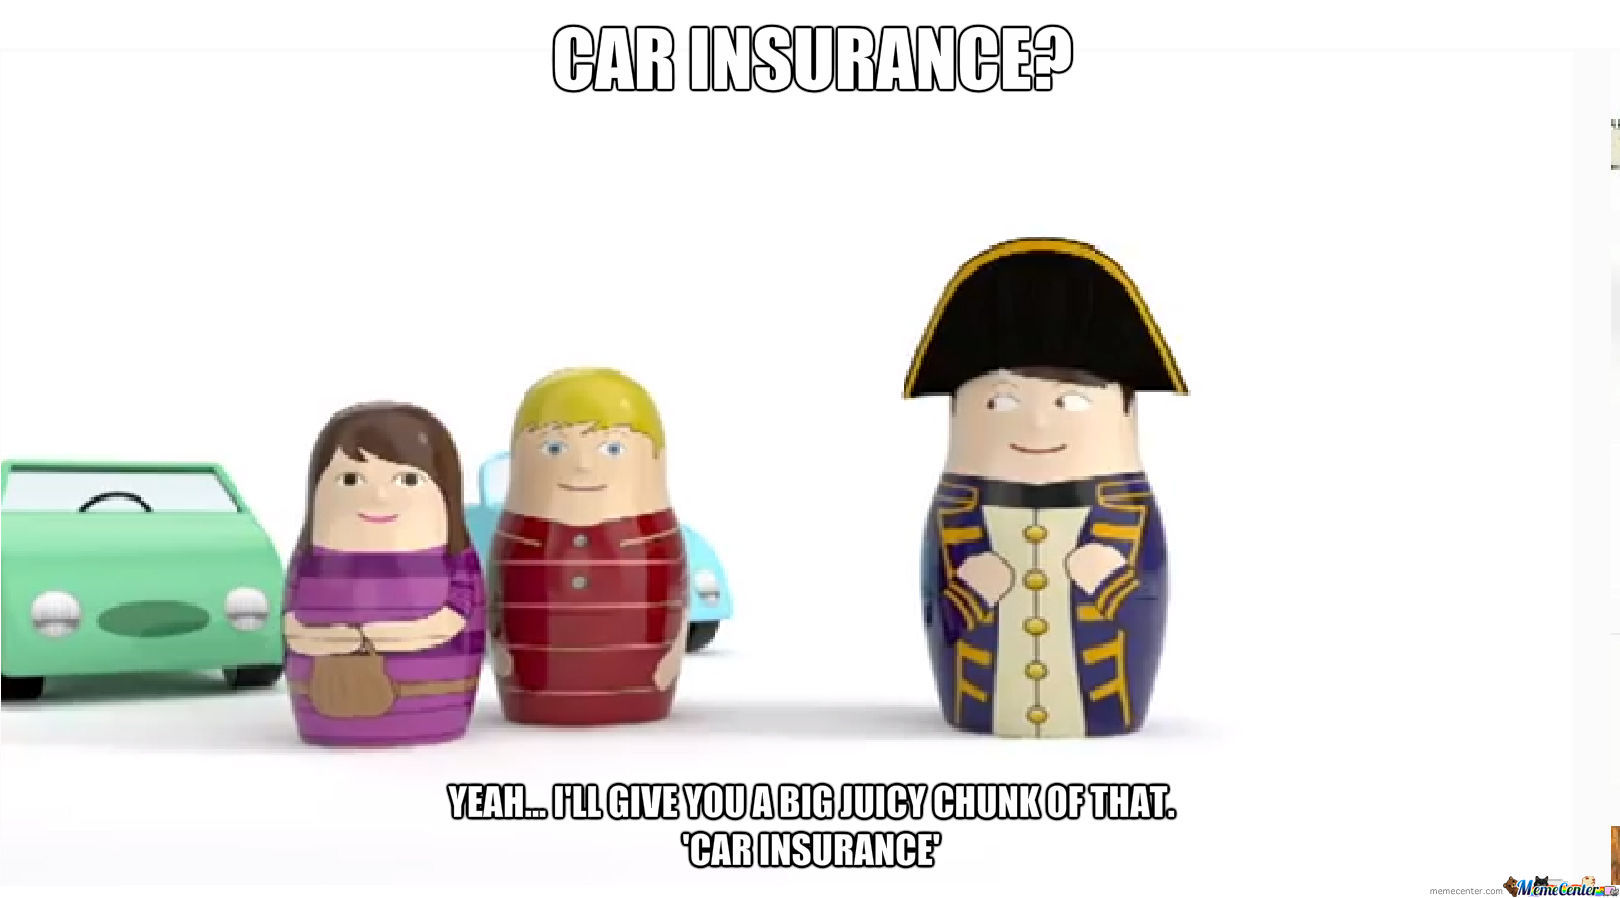 mismeaningful car insurance man_o_1181959 mismeaningful car insurance man by sugarshimmer meme center,Auto Insurance Memes